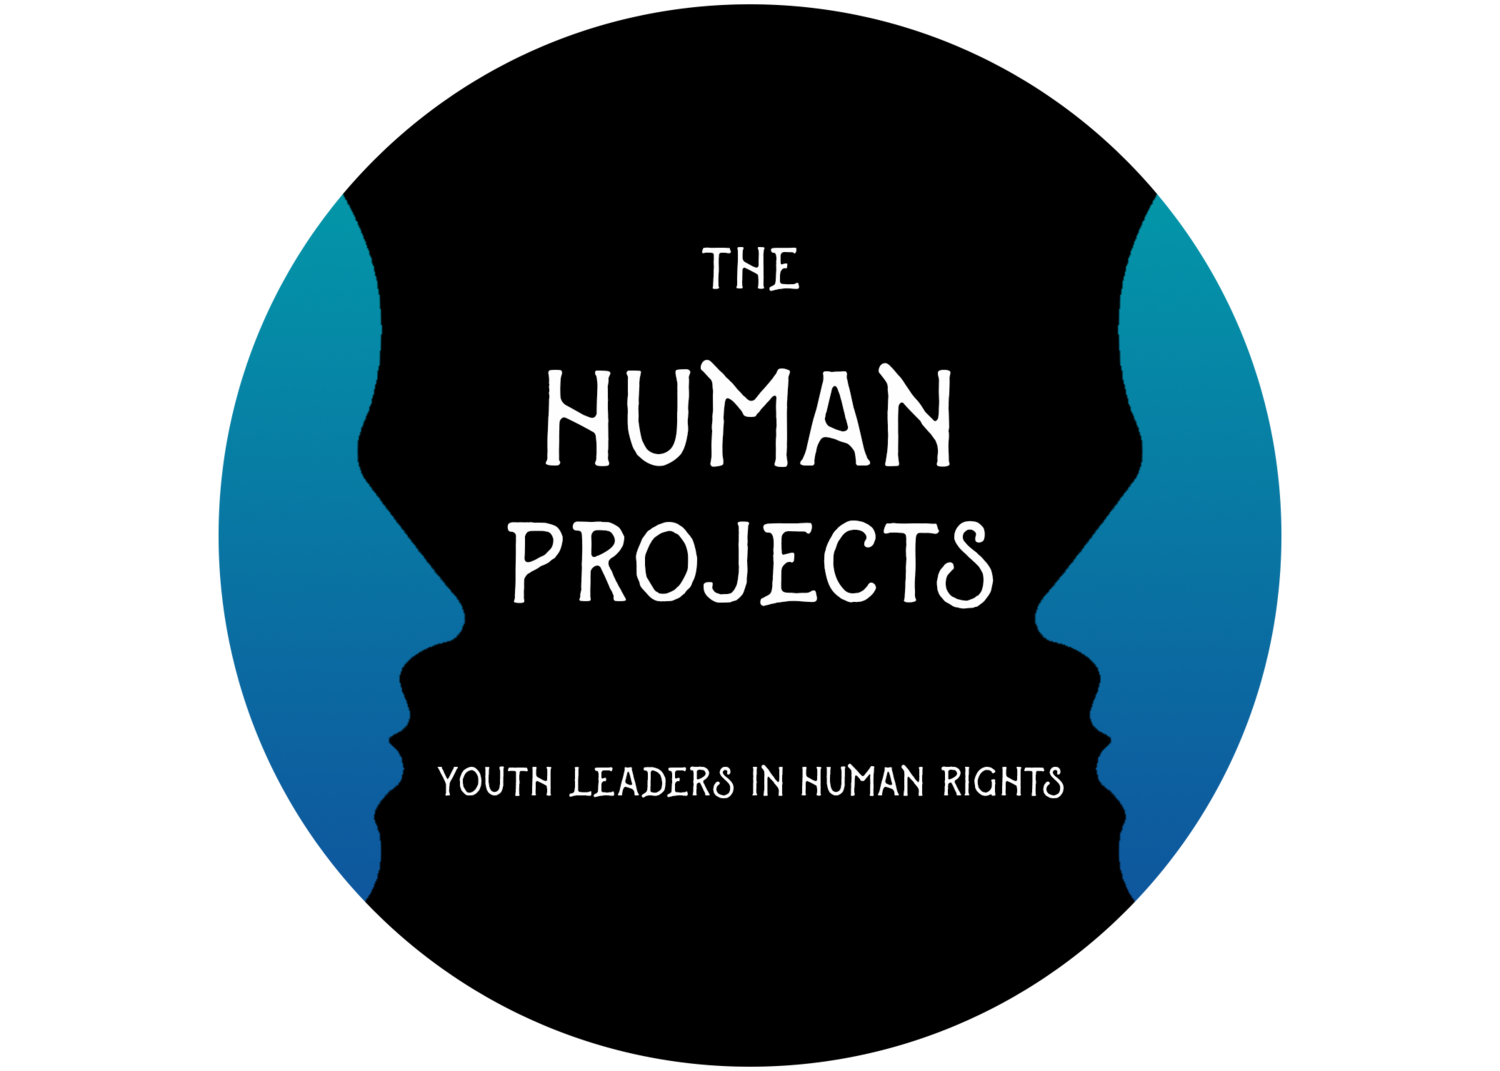 The Human Projects